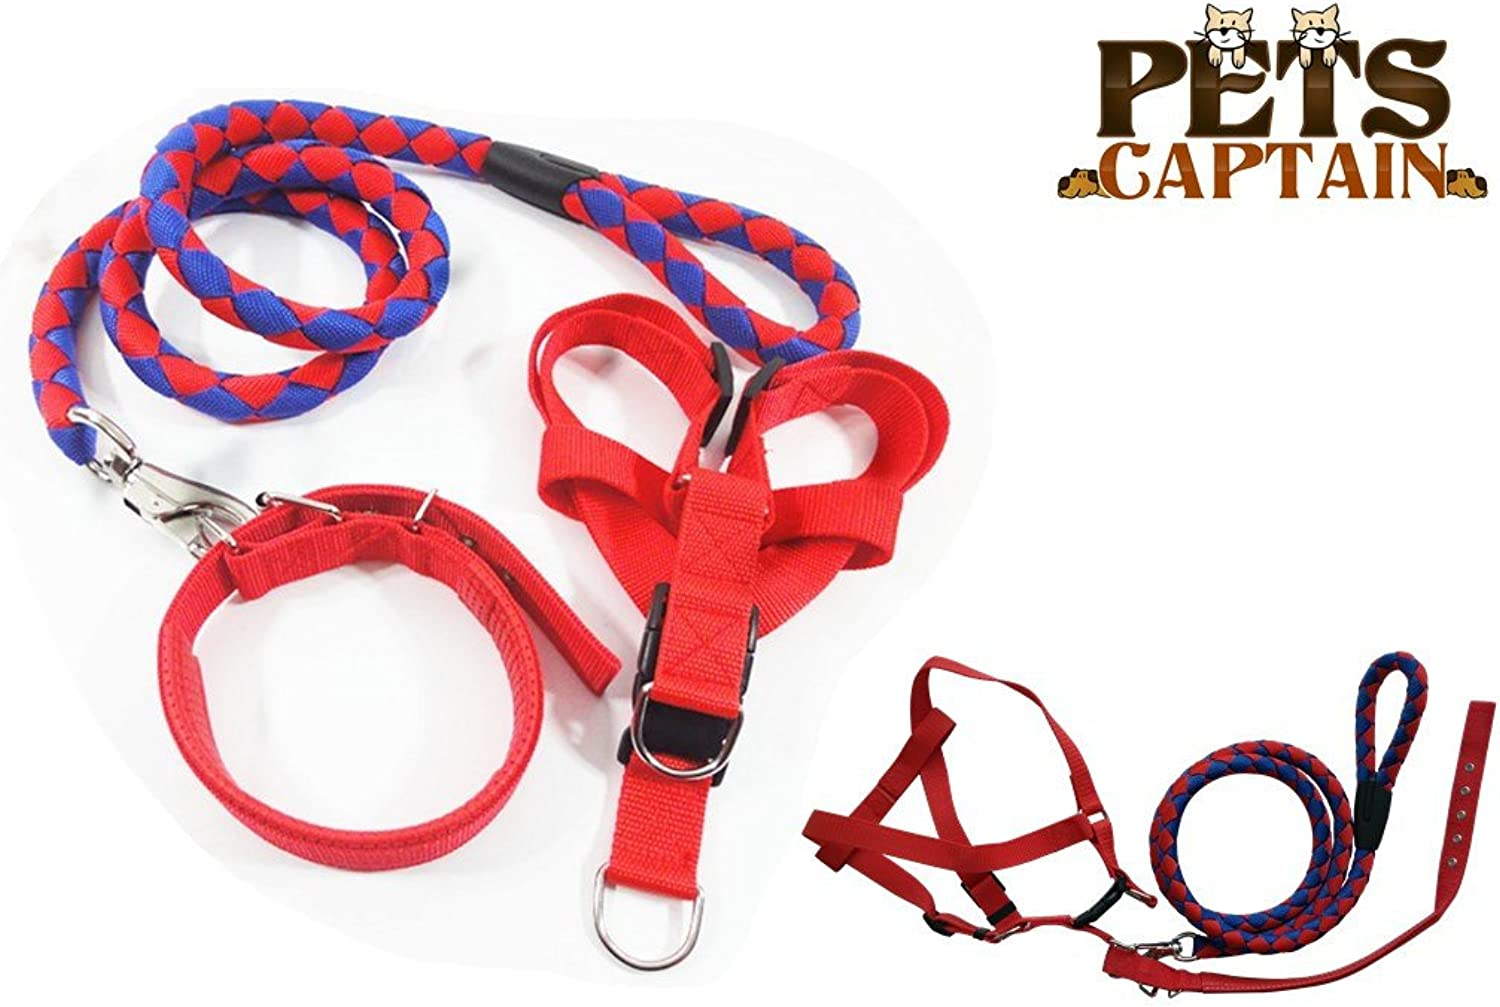 PetsCaptain Pet Leash,Harness,and Collar Bundle Set for Large Dogs and Cats, Red & bluee, Large, OWL3RBUL